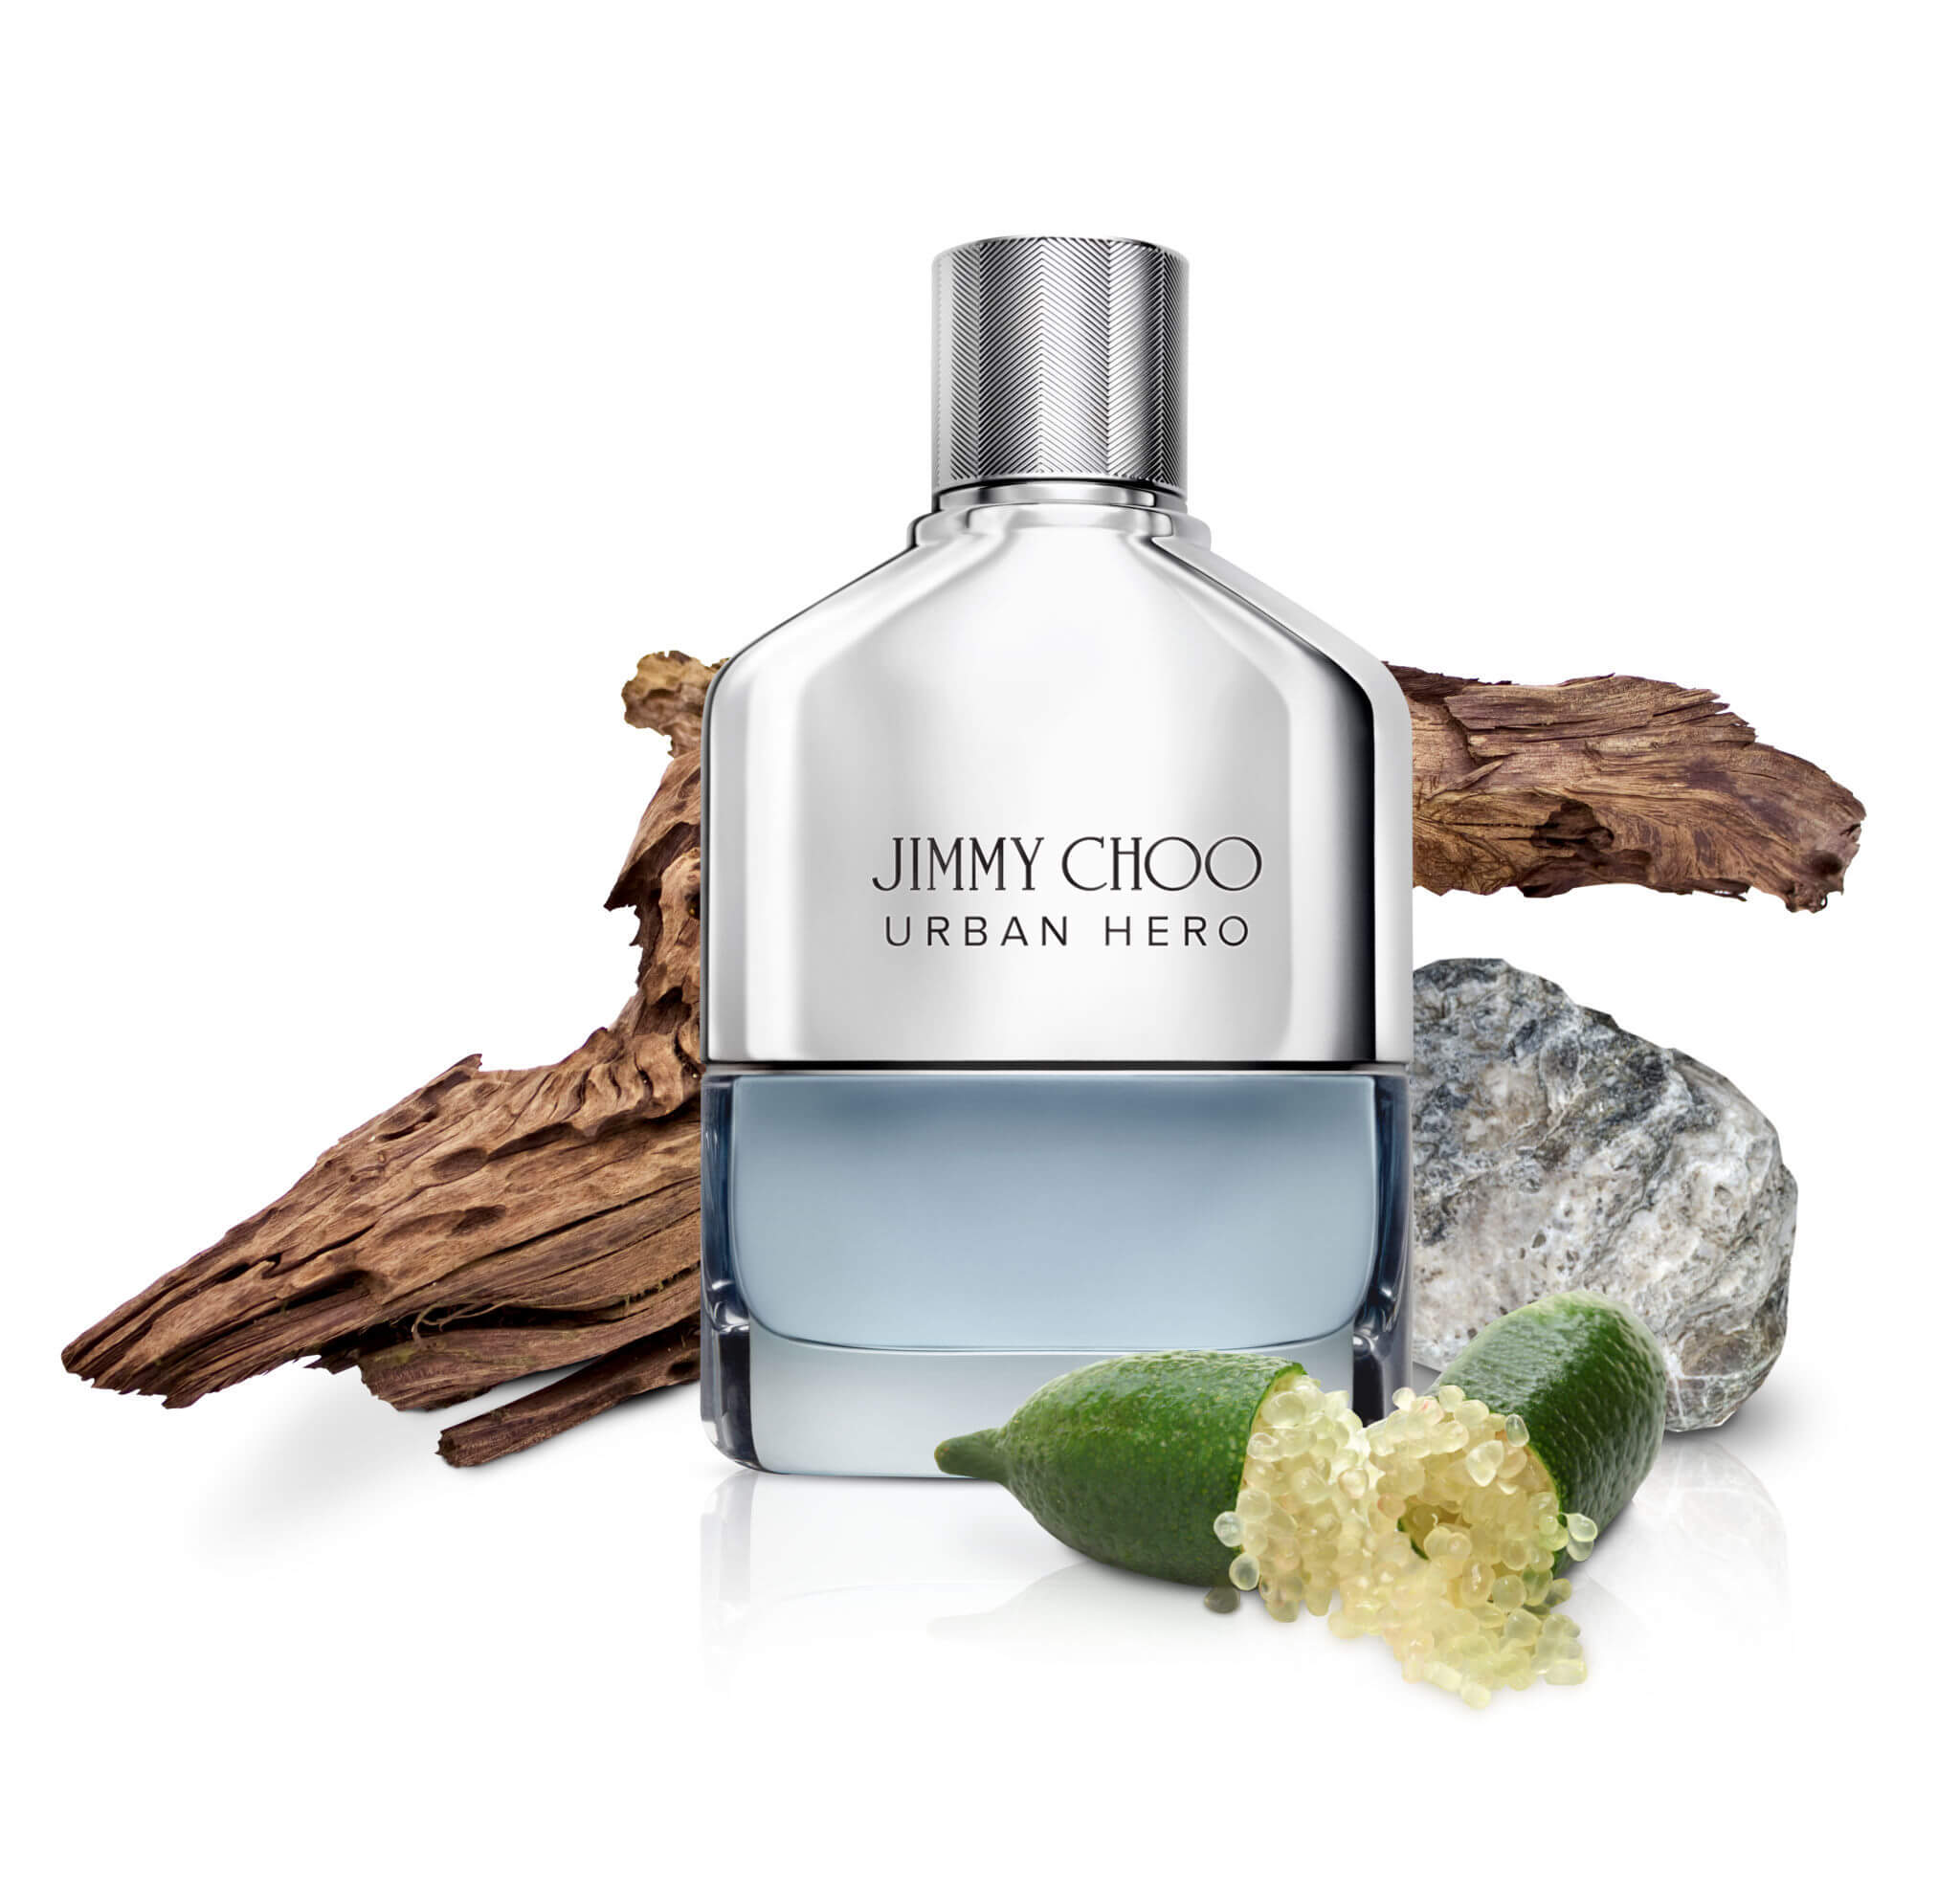 JIMMY-CHOO_URBAN-HERO_INGREDIENTS.jpg#asset:3014